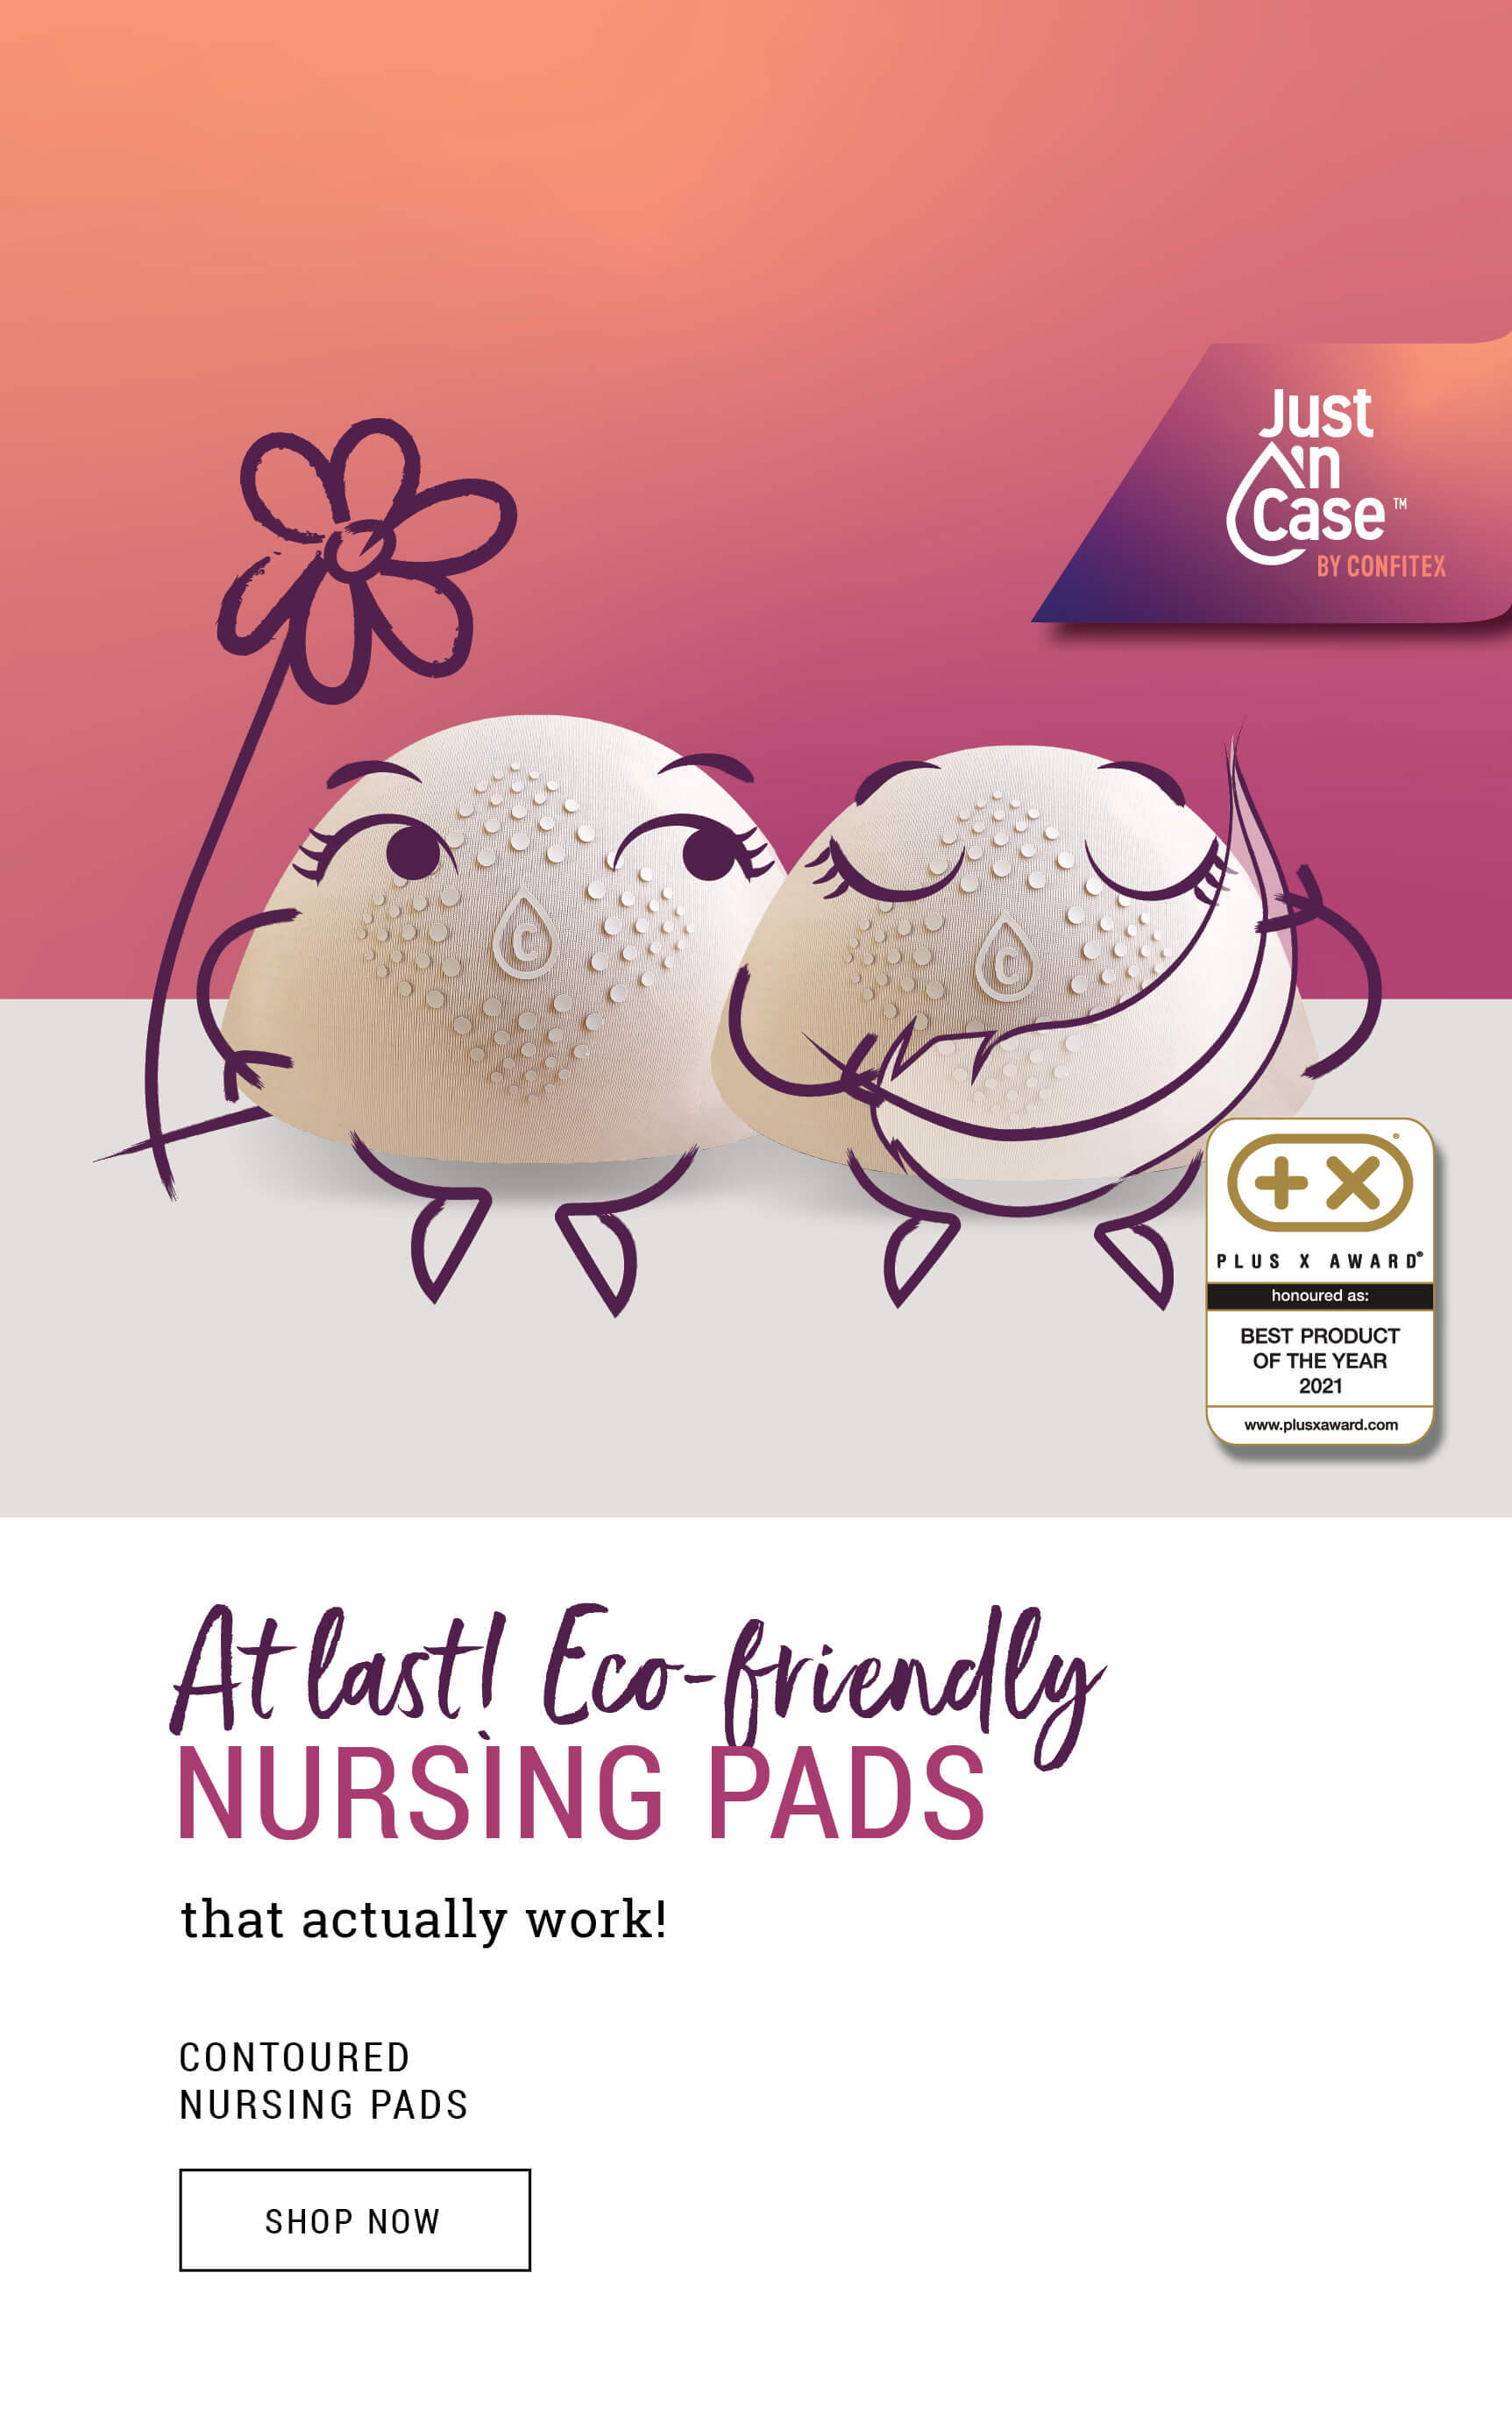 Nursing Pads Shop - Eco-friendly, super absorbent, and gentle on your skin